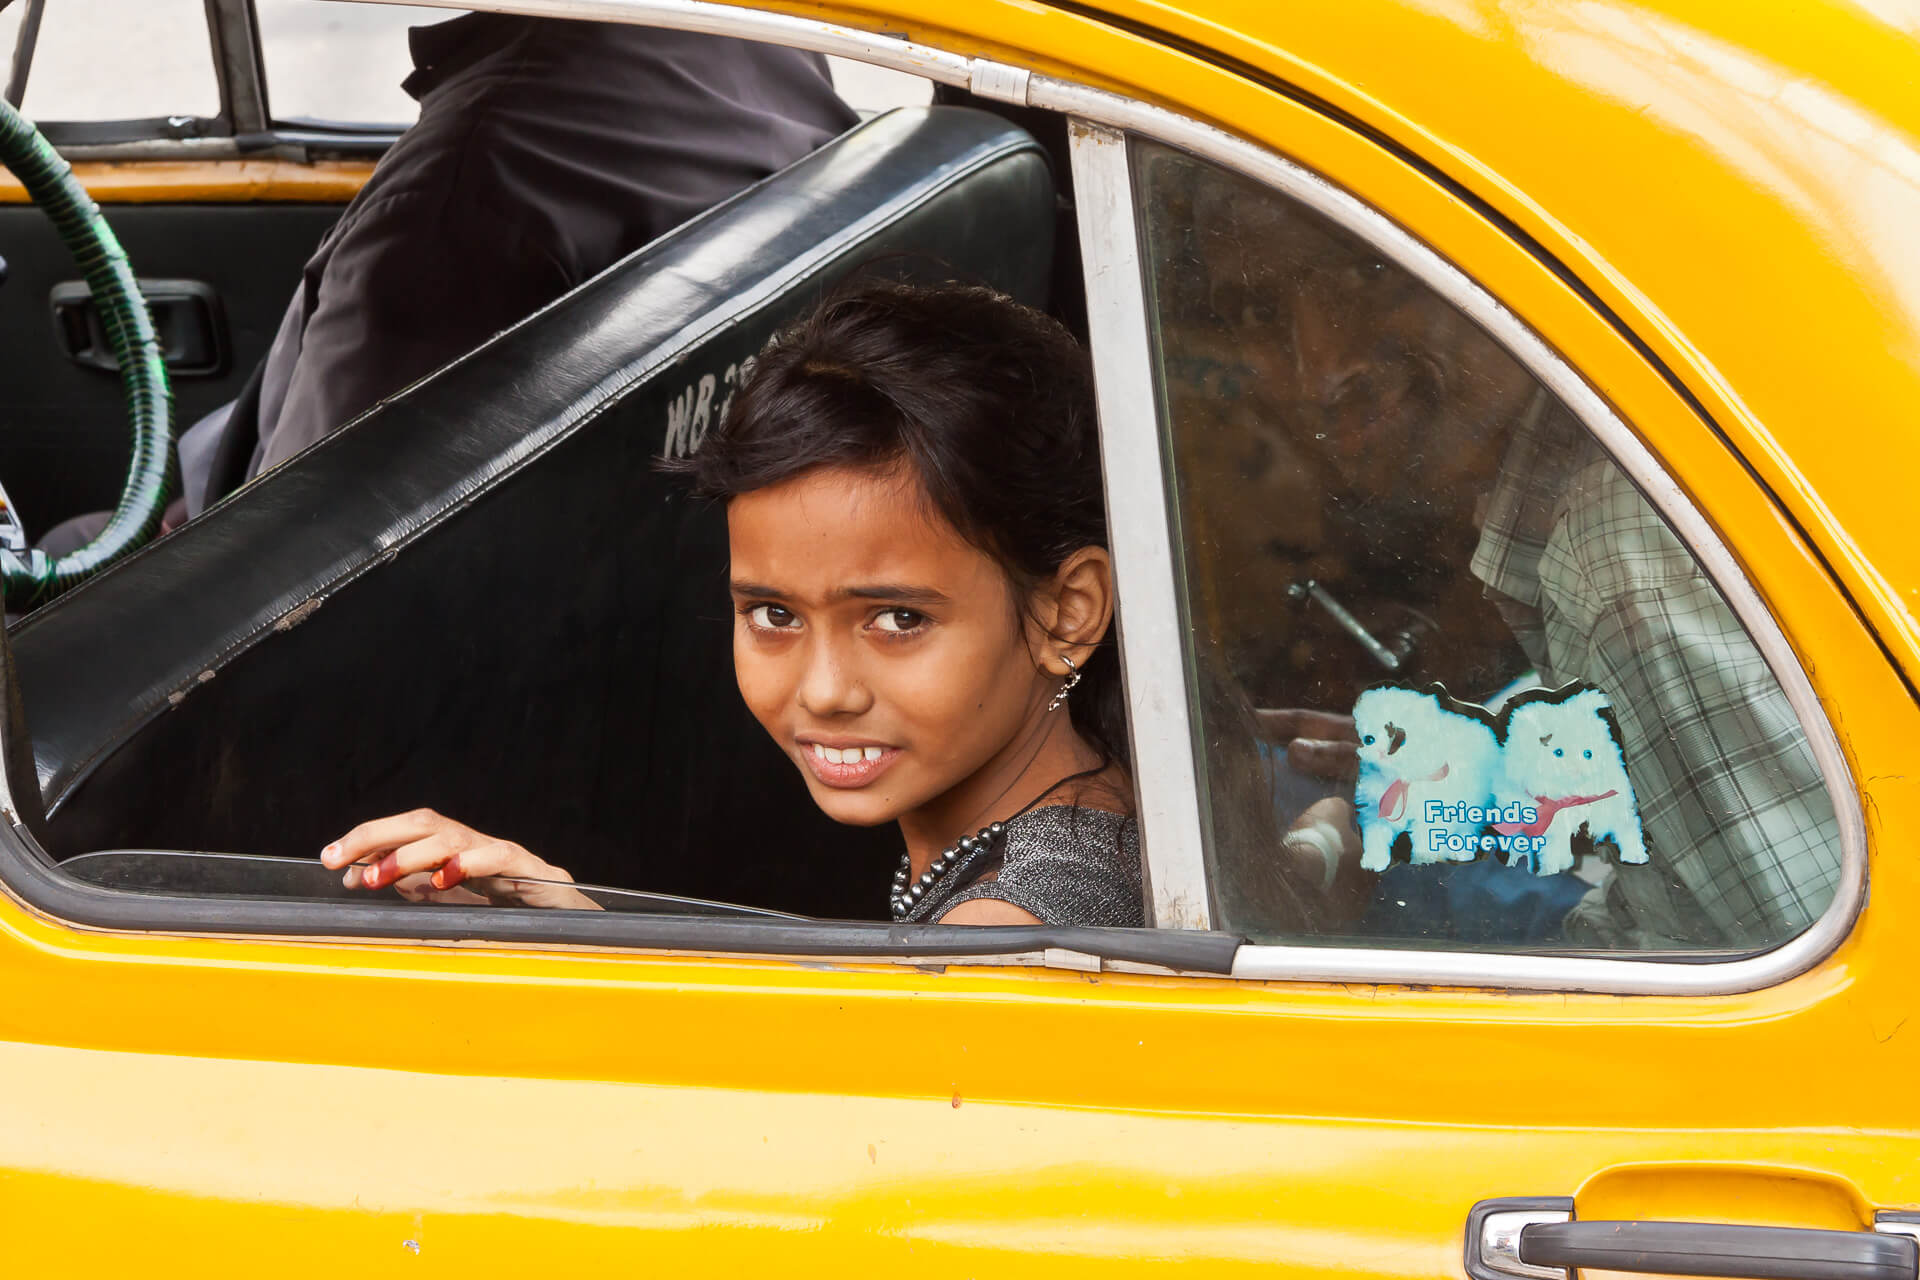 Girl in Cab I | Streetfotografie in Kalkutta